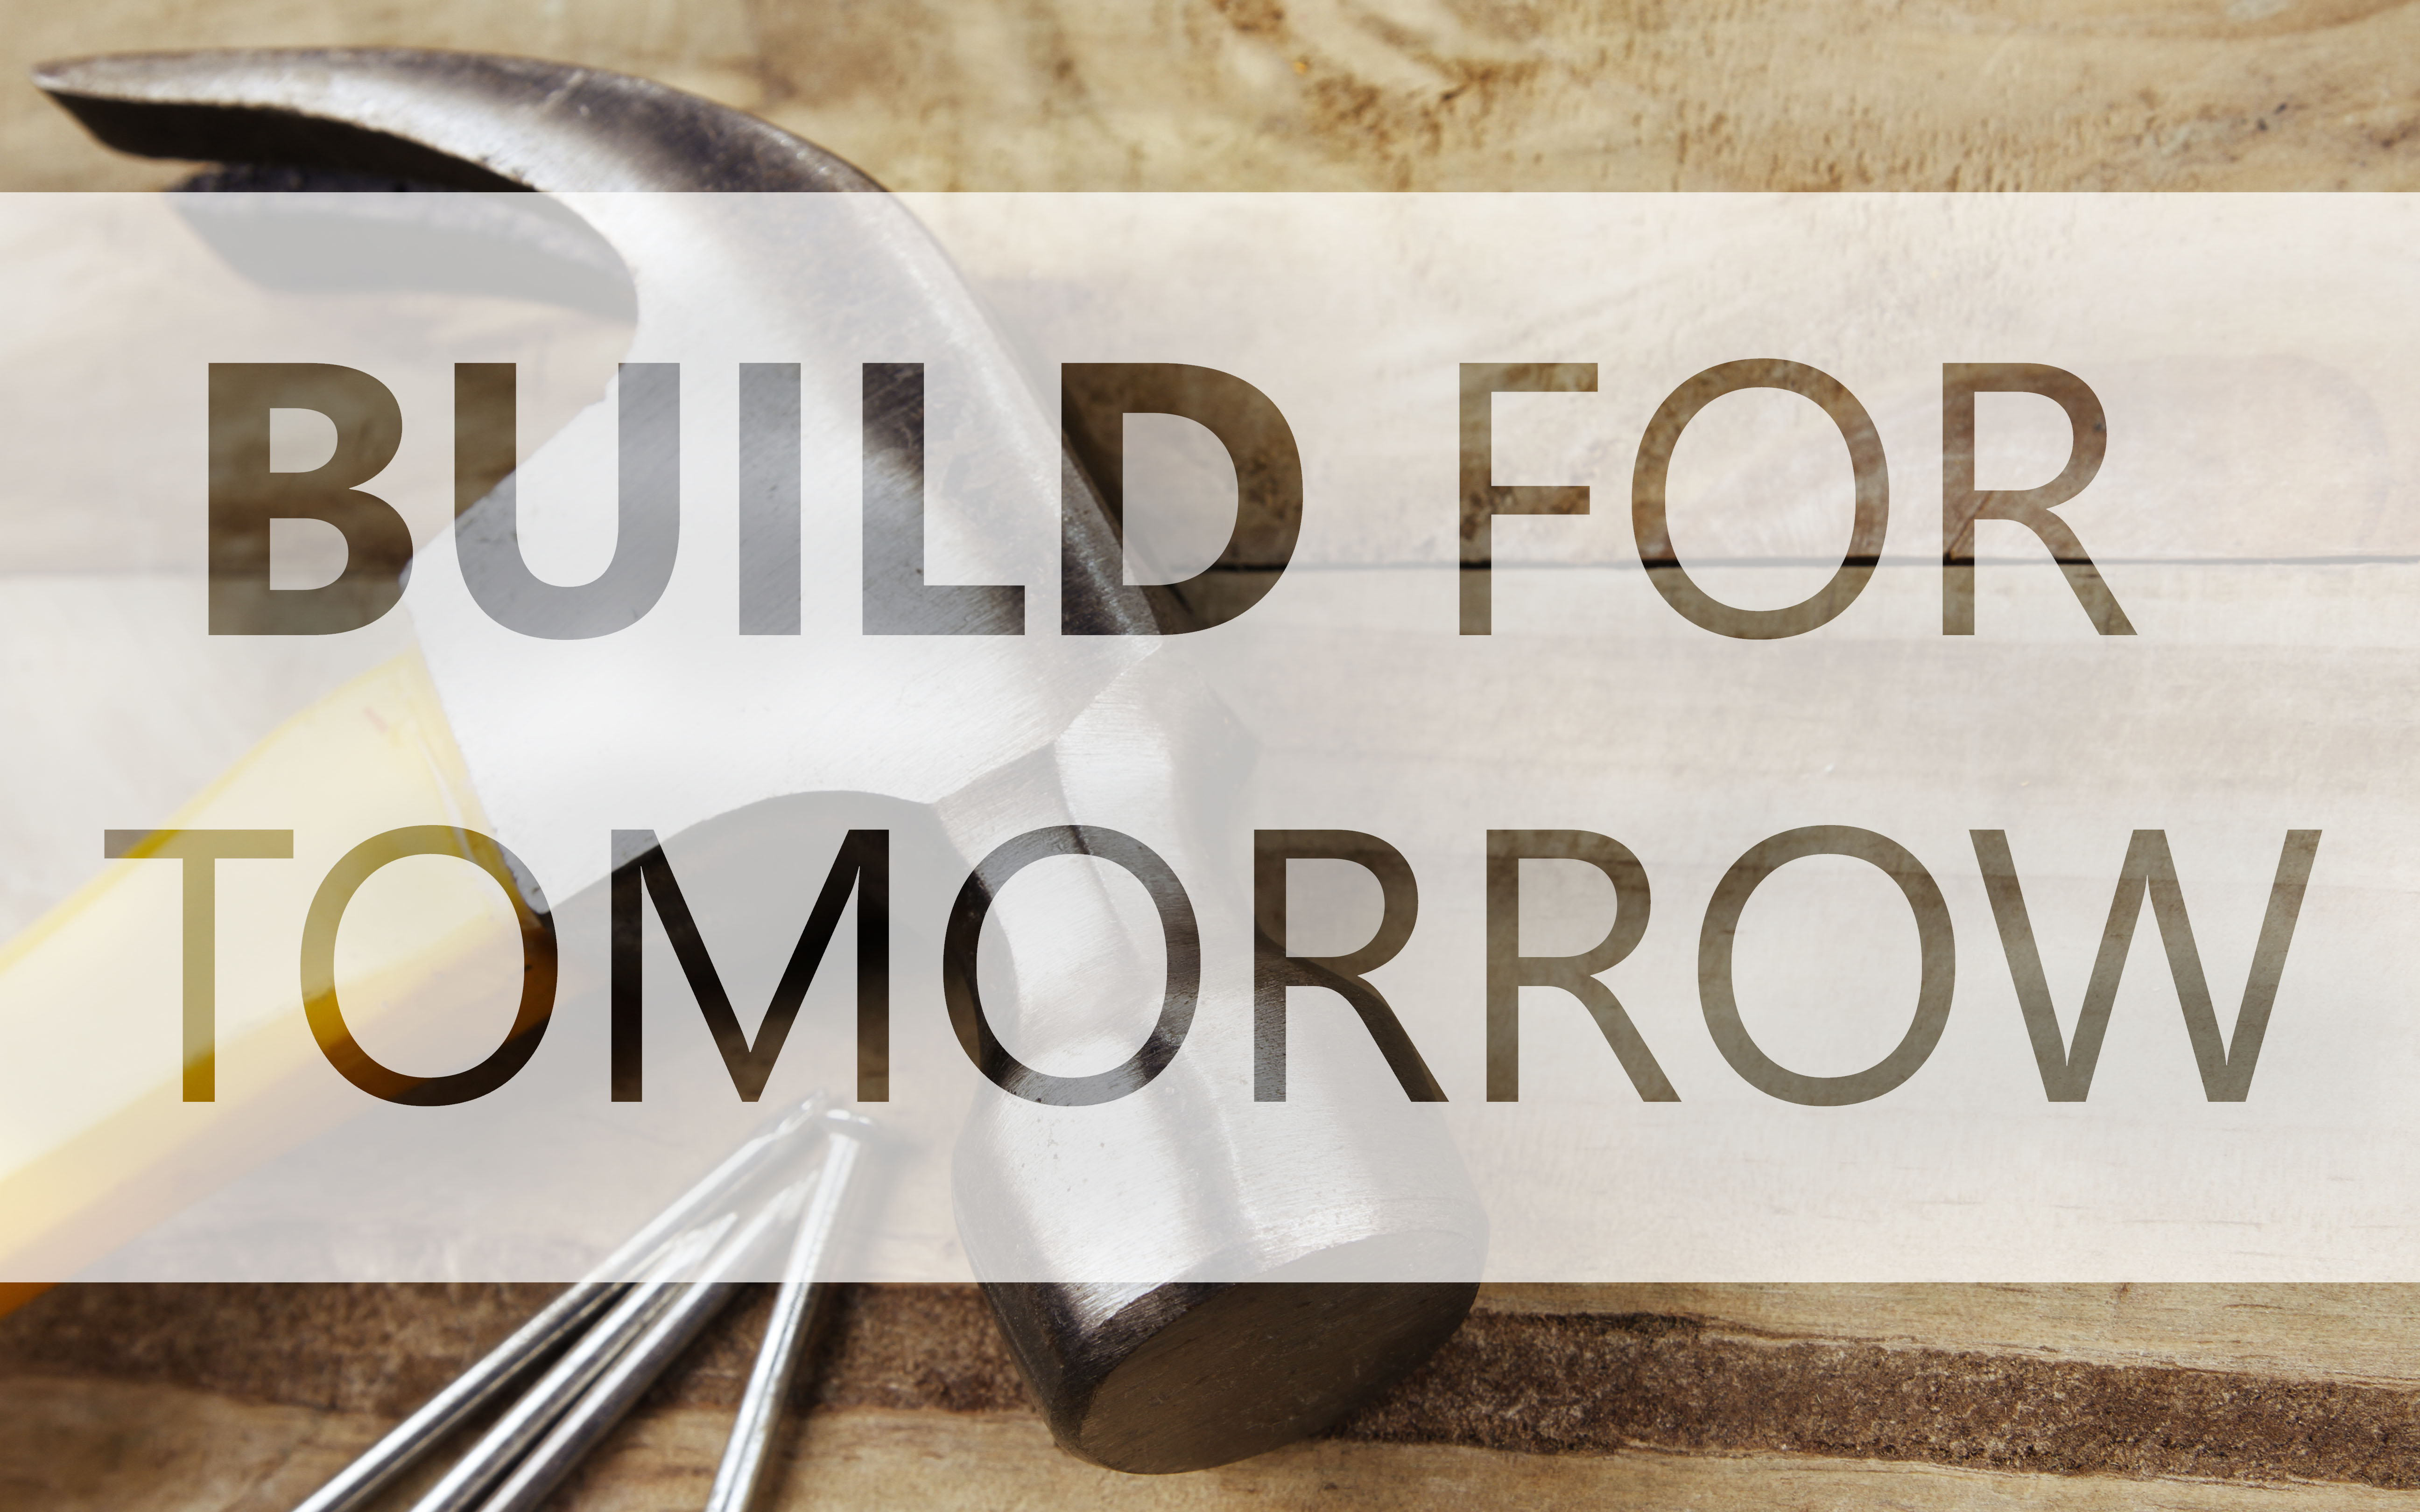 Don't build for today, build for the future.